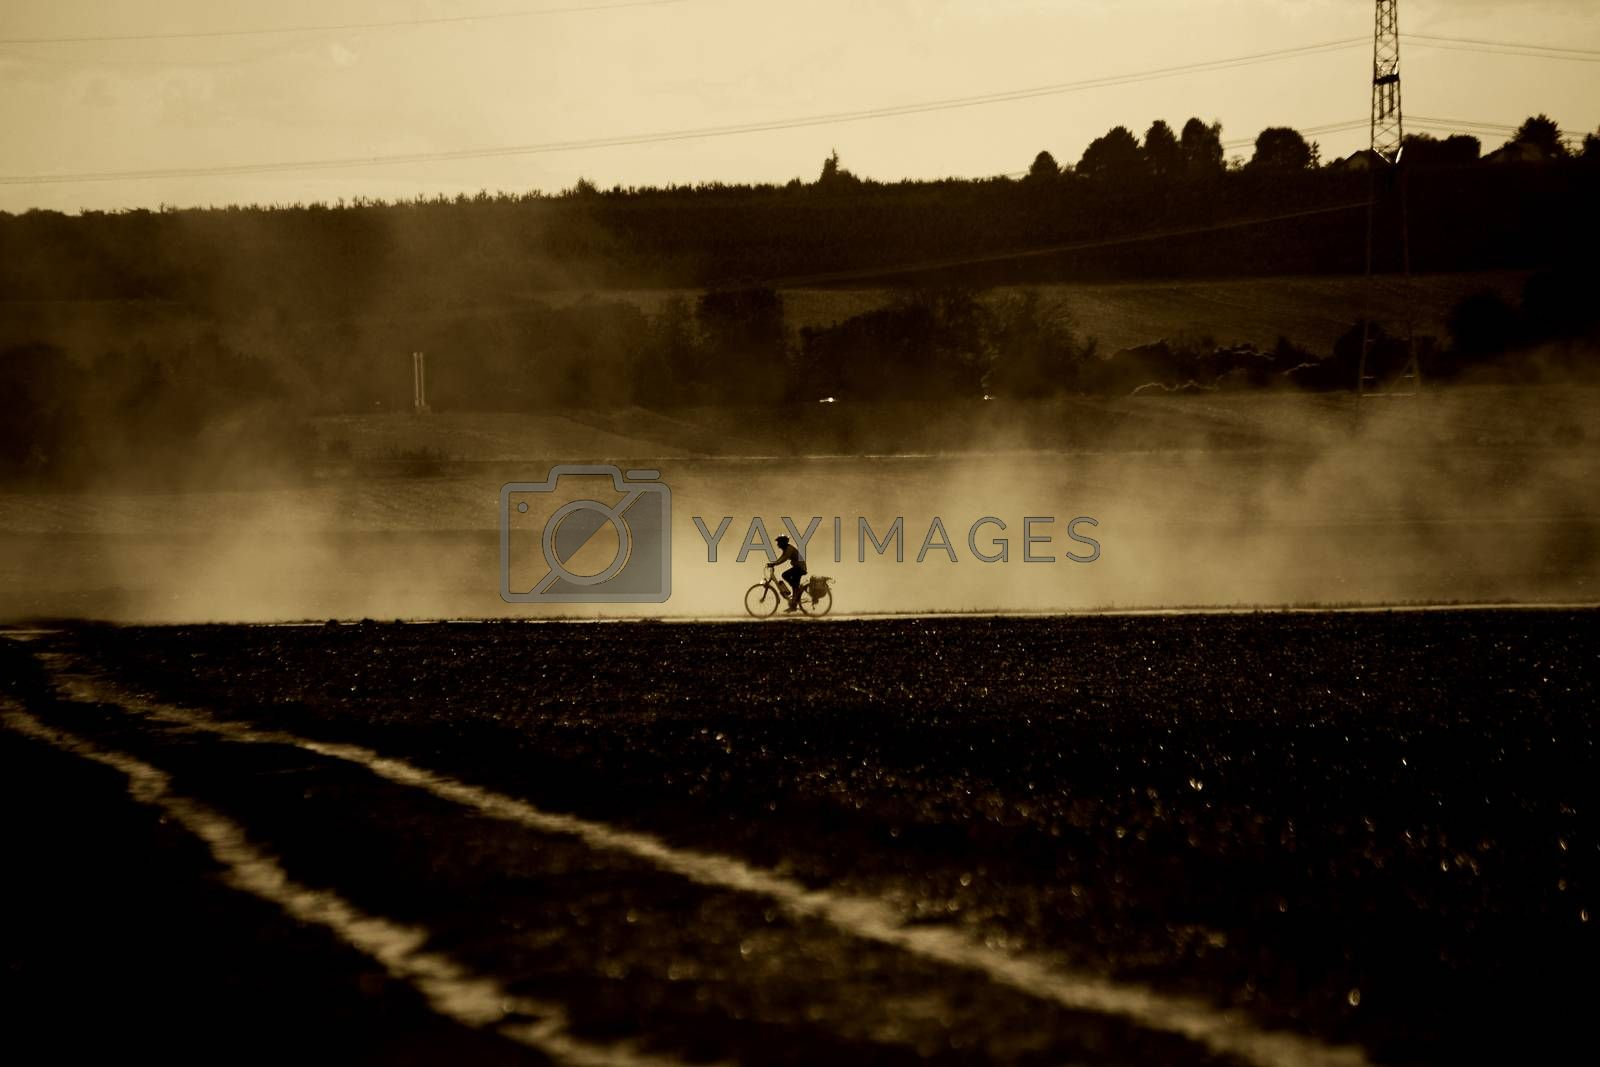 A cyclist rides through the sputtered vapor of a tractor.